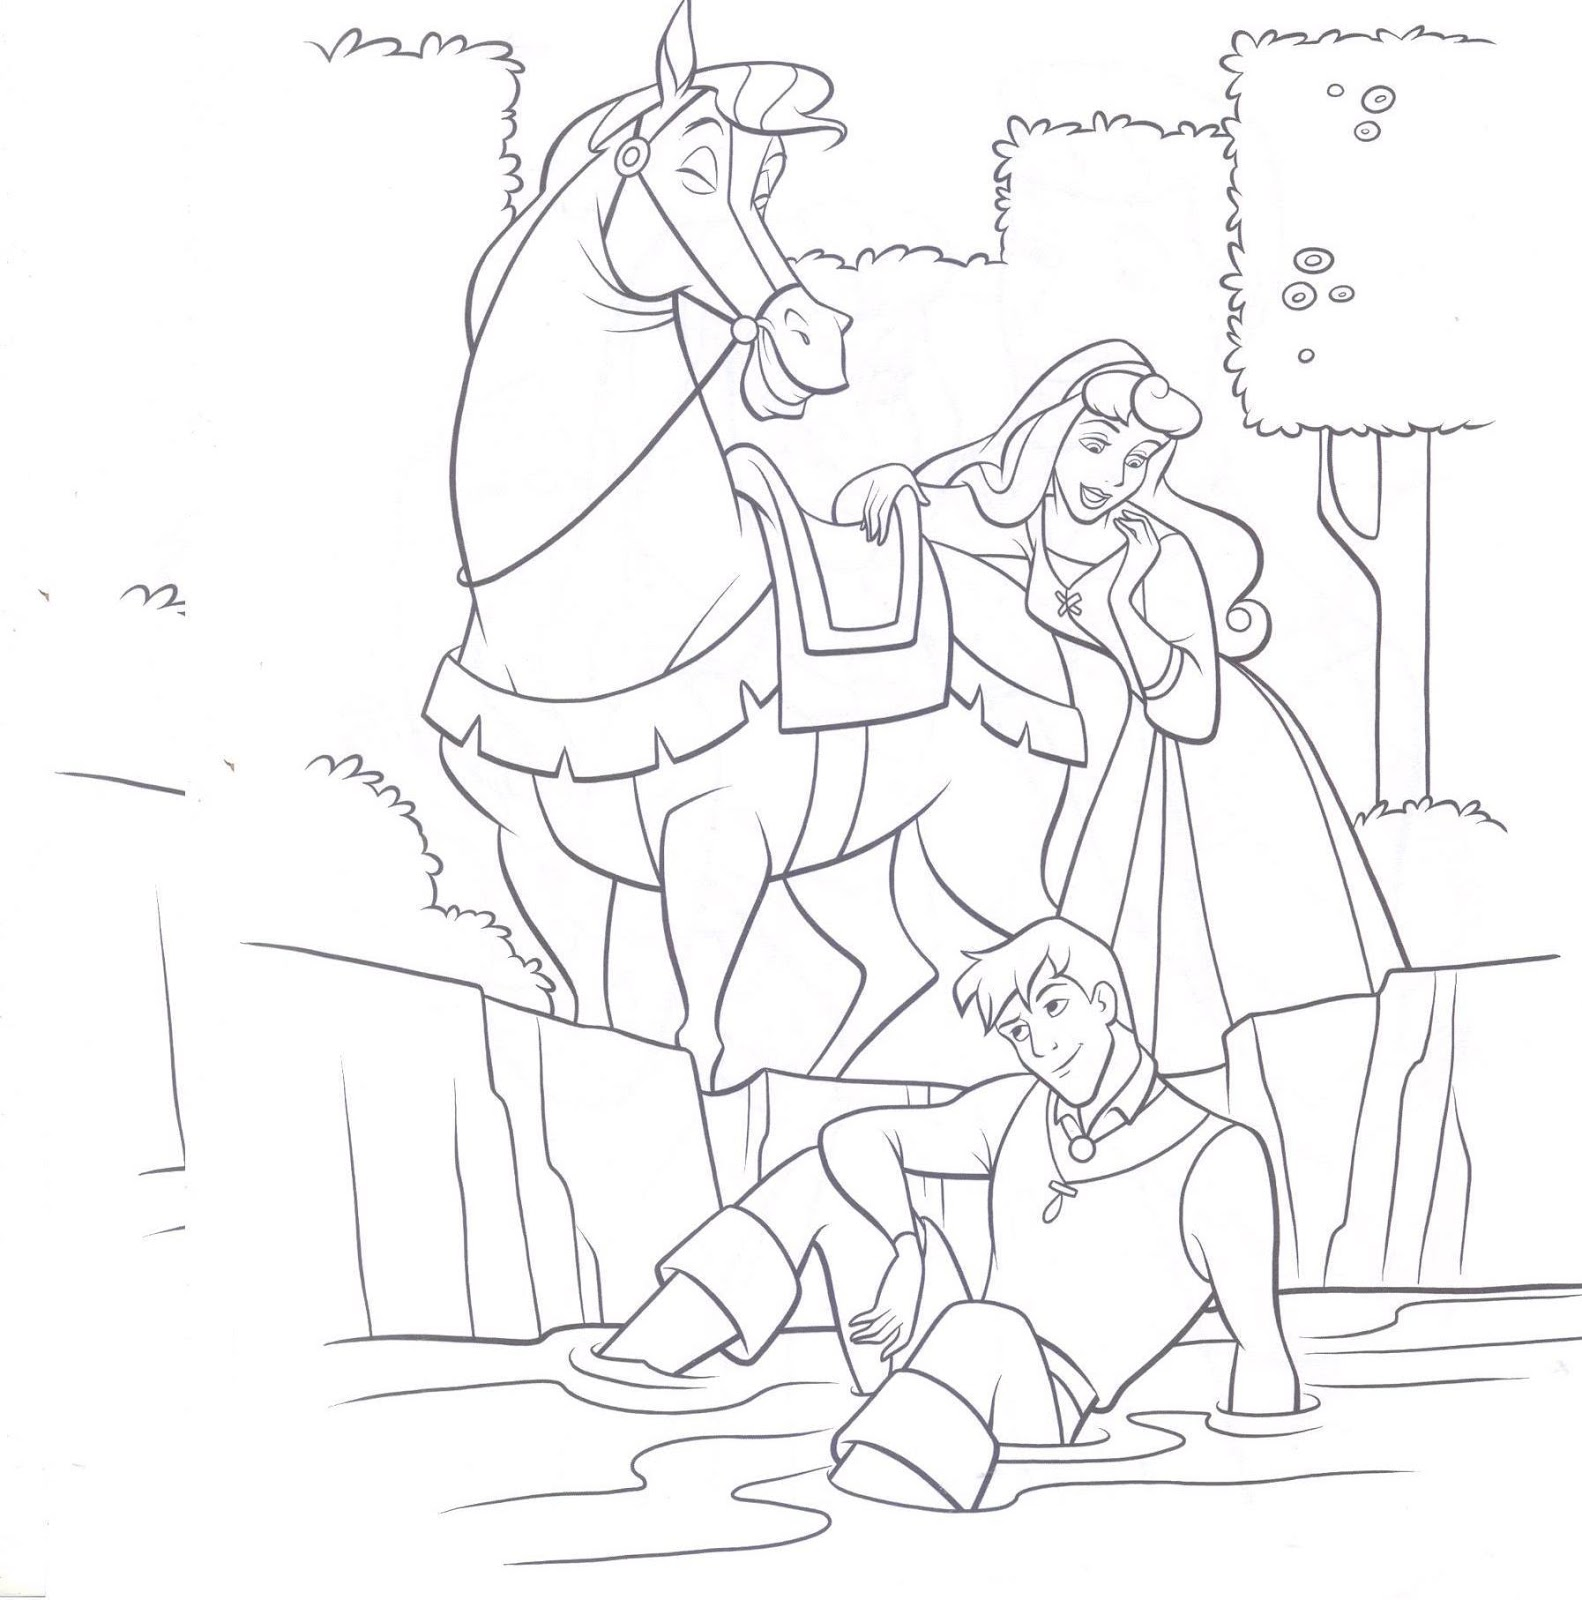 disney prince phillip coloring pages - photo#8